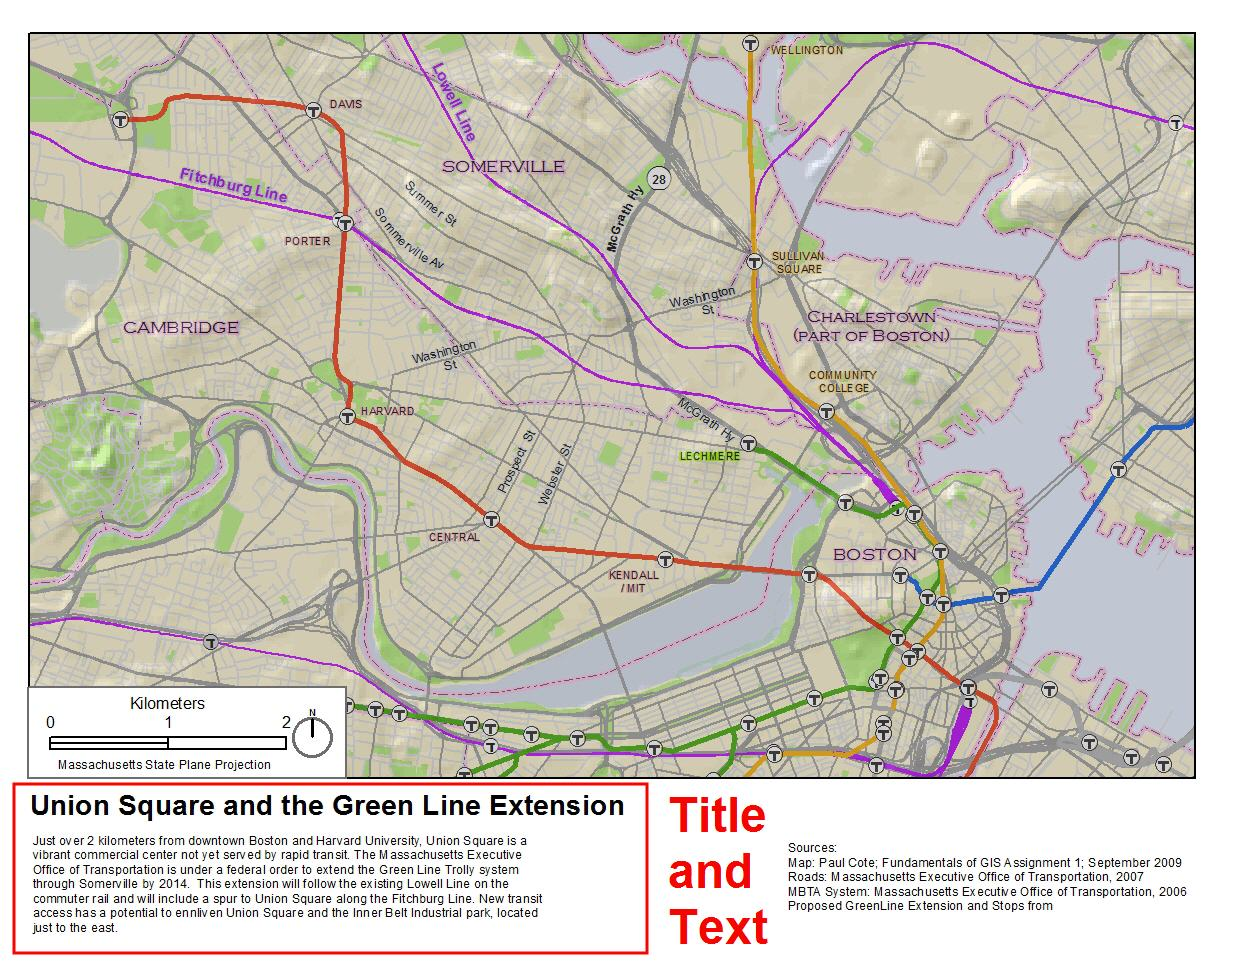 Gis manual elements of cartographic style elements every map should have biocorpaavc